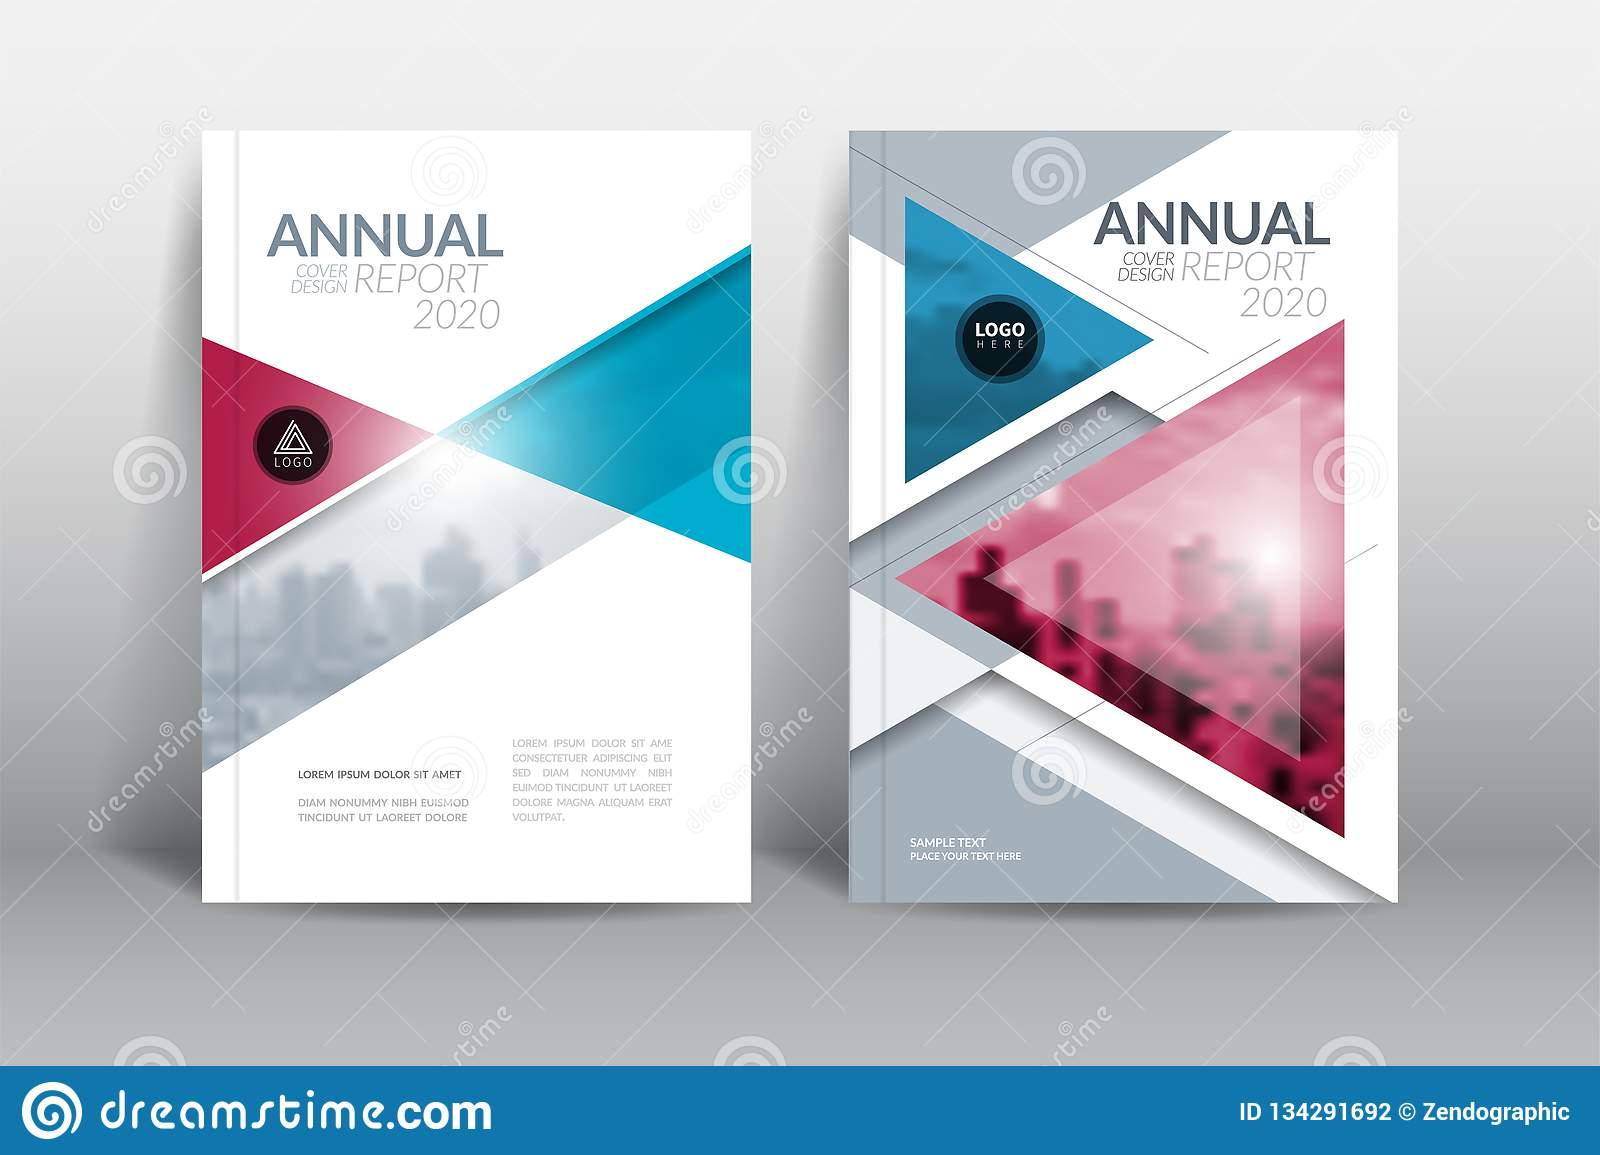 Annual report cover brochure flyer design template with abstract triangle vector.